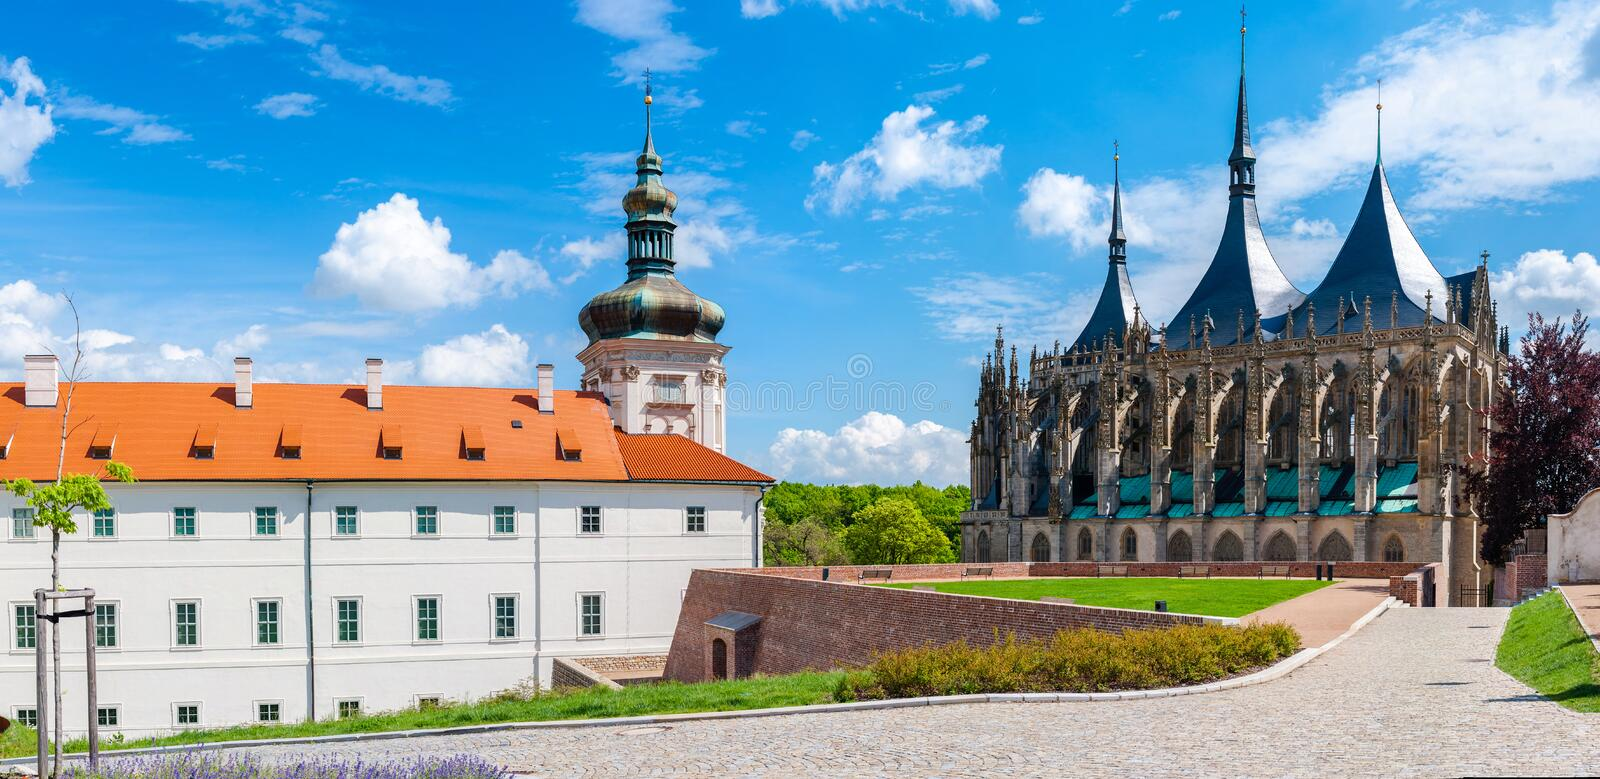 Kutna Hora. Jesuit College in Kutna Hora, Czech Republic with the UNESCO protected St. Barbara's Church in the background royalty free stock image